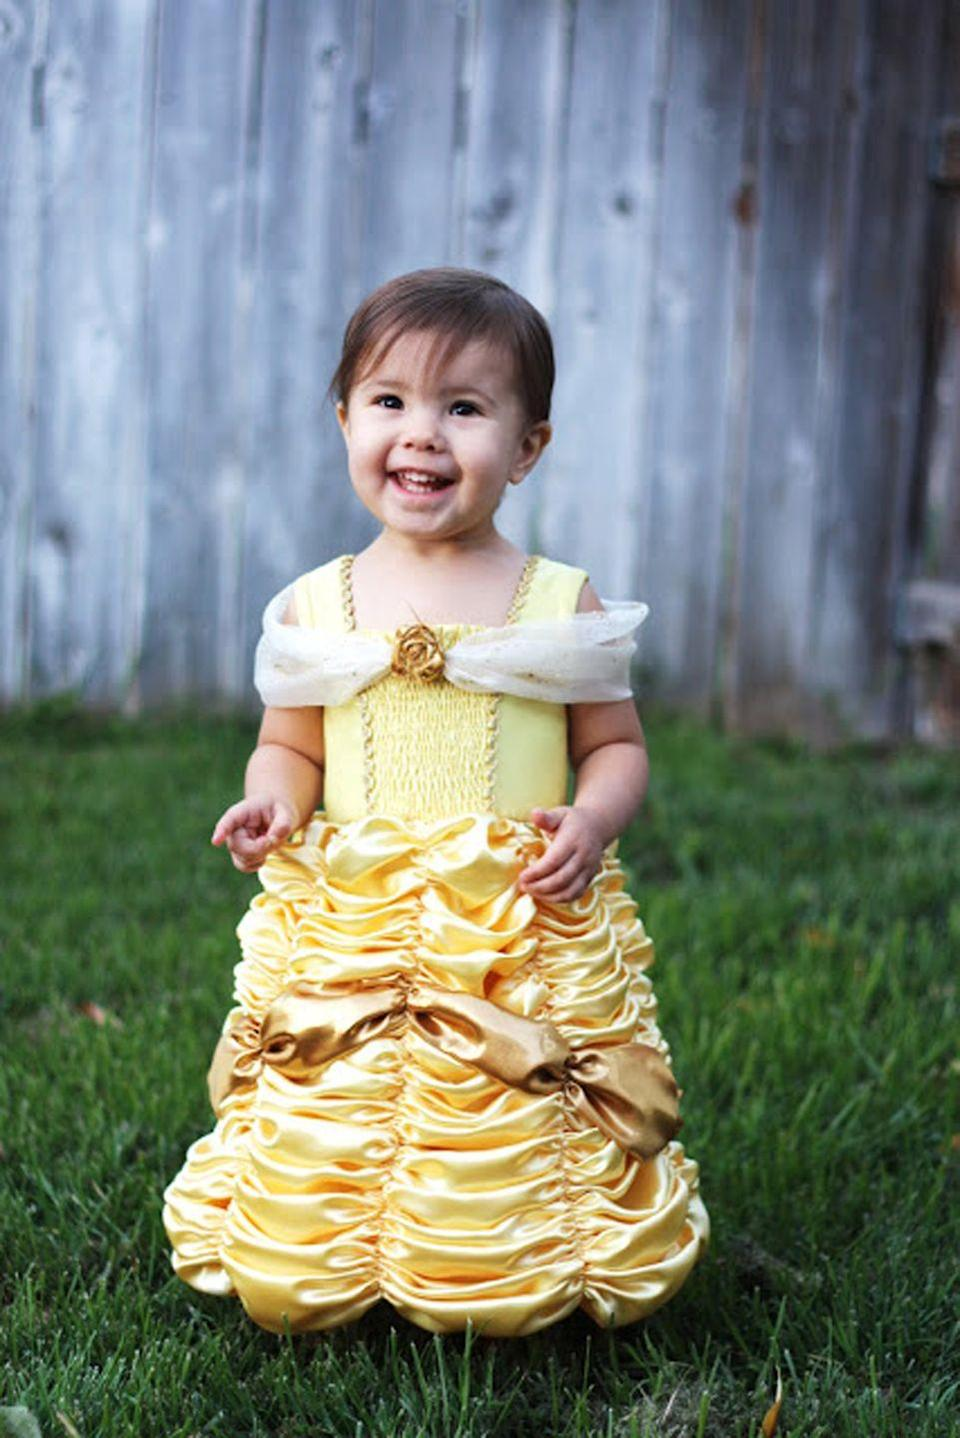 """<p>Your toddler will be thrilled to wear this sweet dress straight out of <em>Beauty and the Beast</em>.</p><p><strong>Get the tutorial at <a href=""""http://www.homemadetoast.com/2012/10/belle-princess-dress-costume-pattern.html"""" rel=""""nofollow noopener"""" target=""""_blank"""" data-ylk=""""slk:Homemade Toast"""" class=""""link rapid-noclick-resp"""">Homemade Toast</a>.</strong> </p>"""